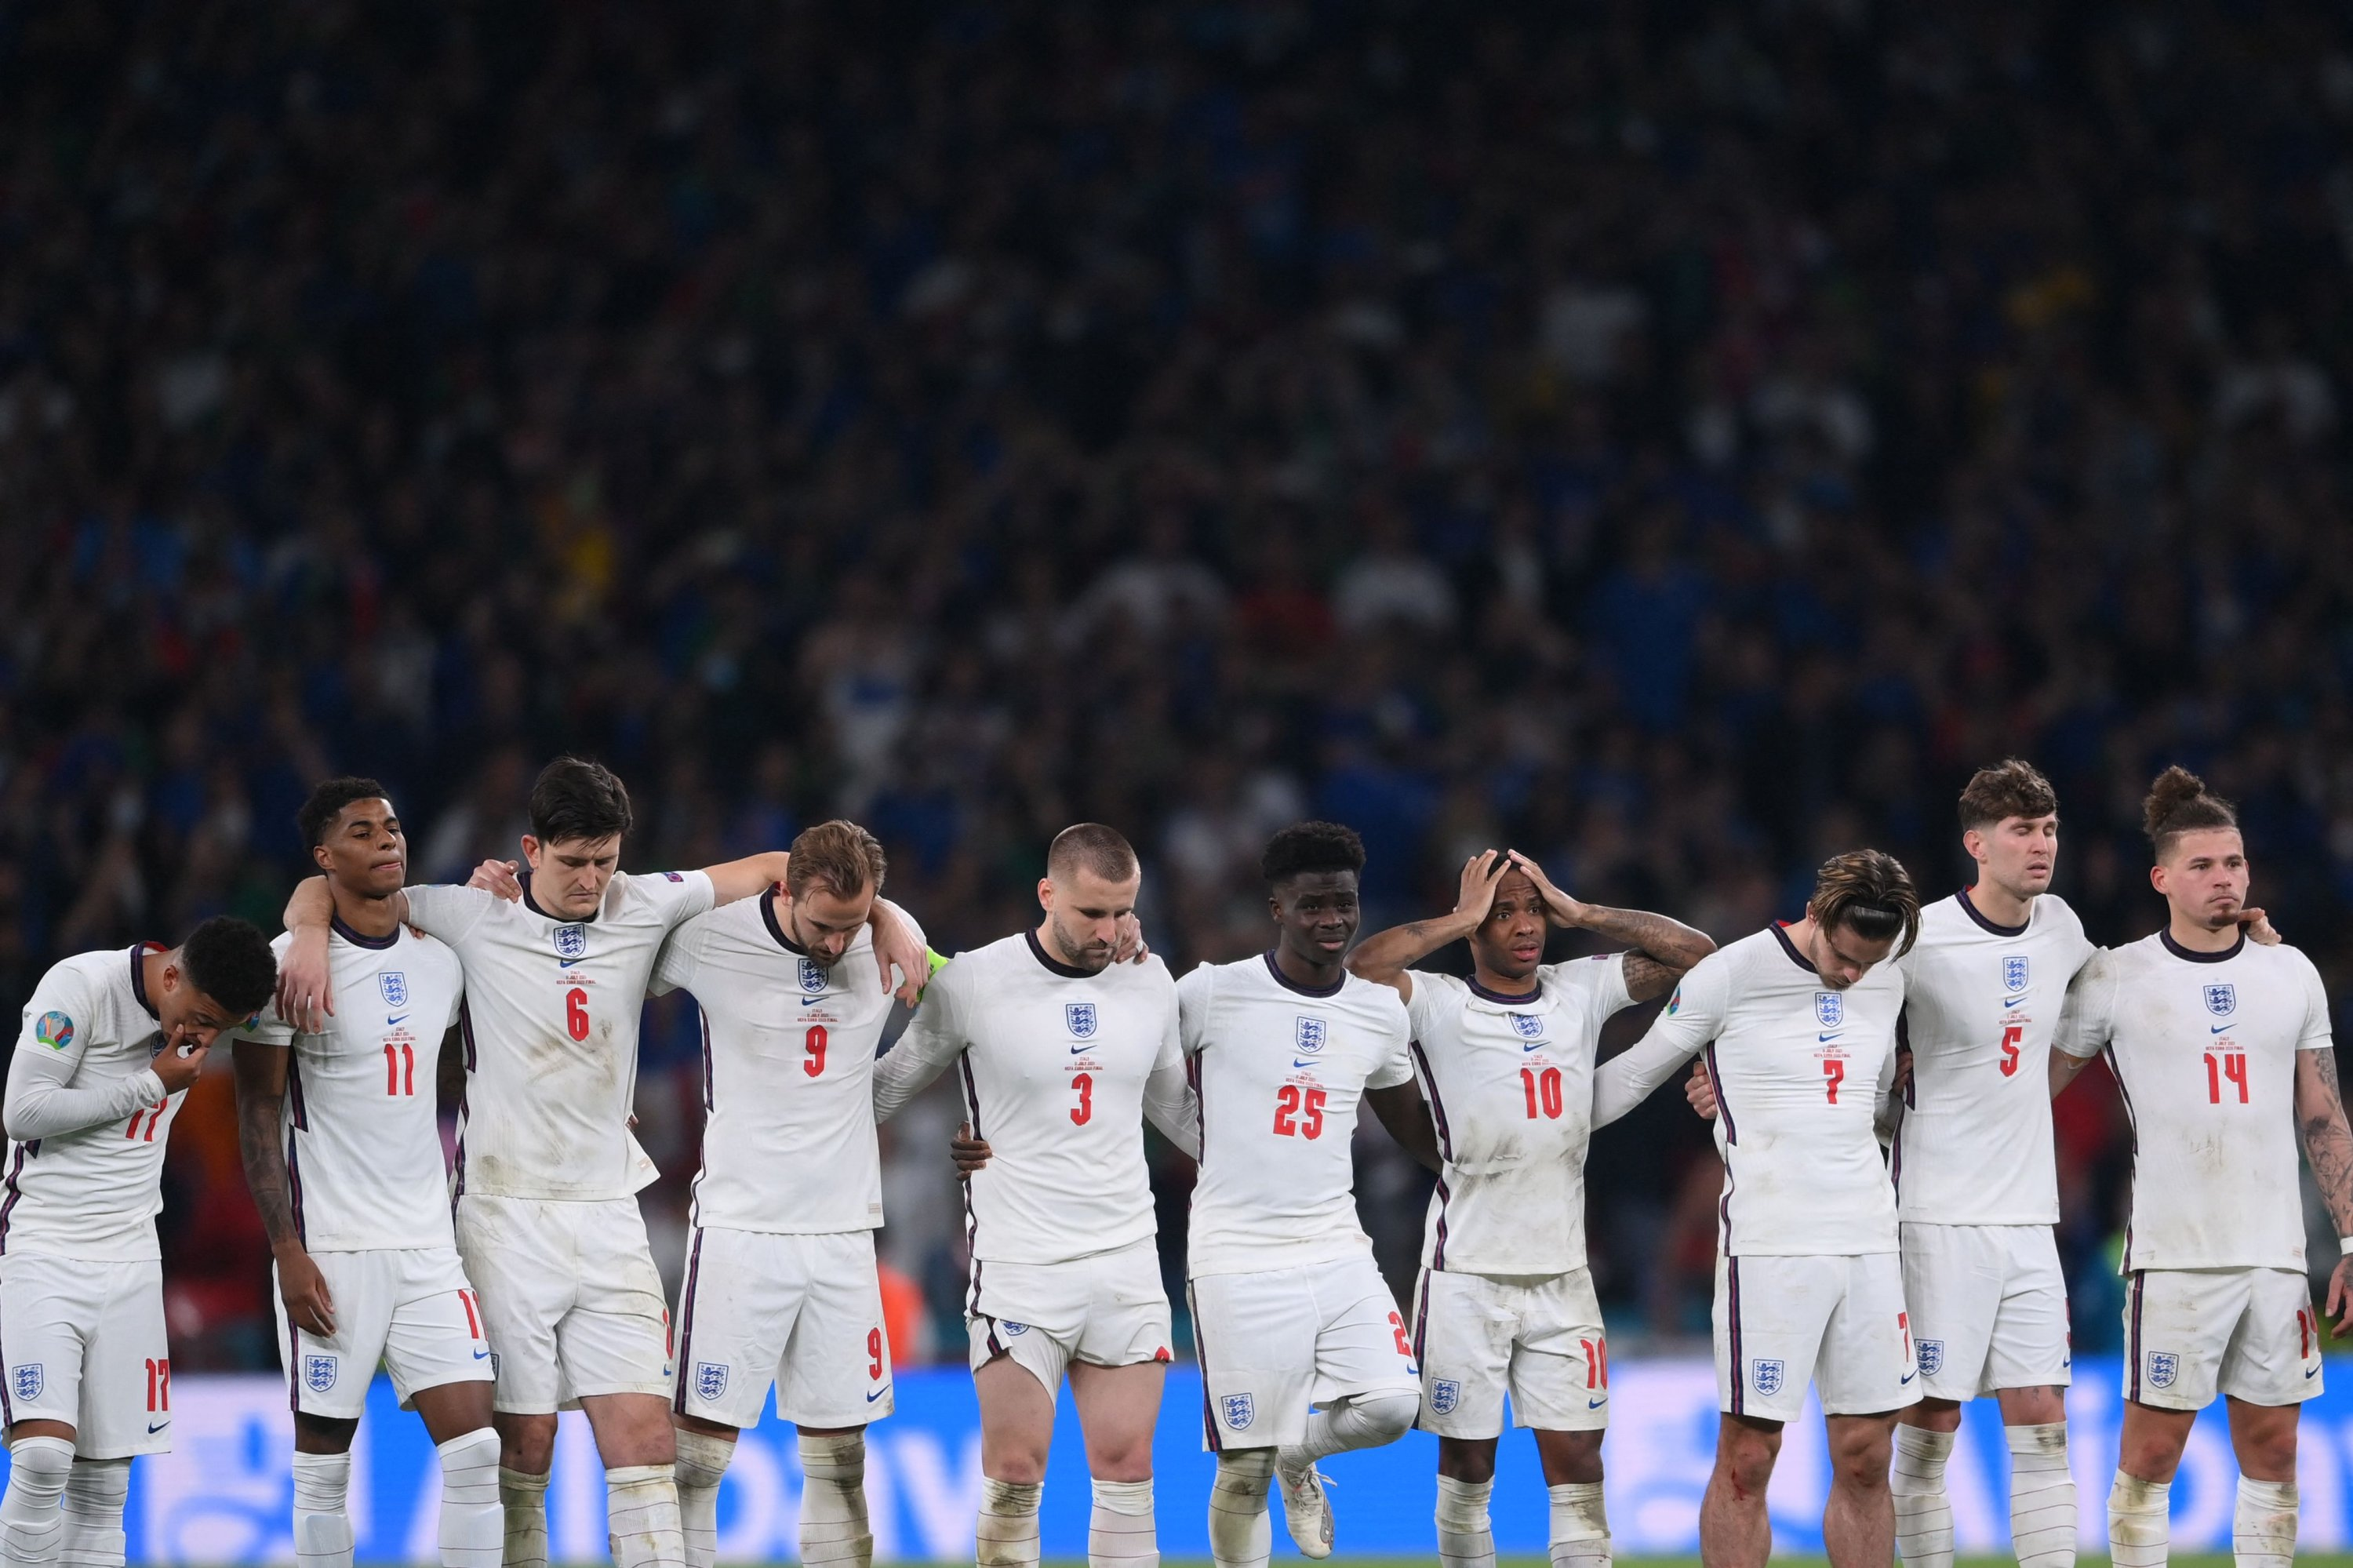 England players watch the penalty shootout during the Eur 2020 final match against Italy at Wembley Stadium in London, England, July 11, 2021. (AFP Photo)